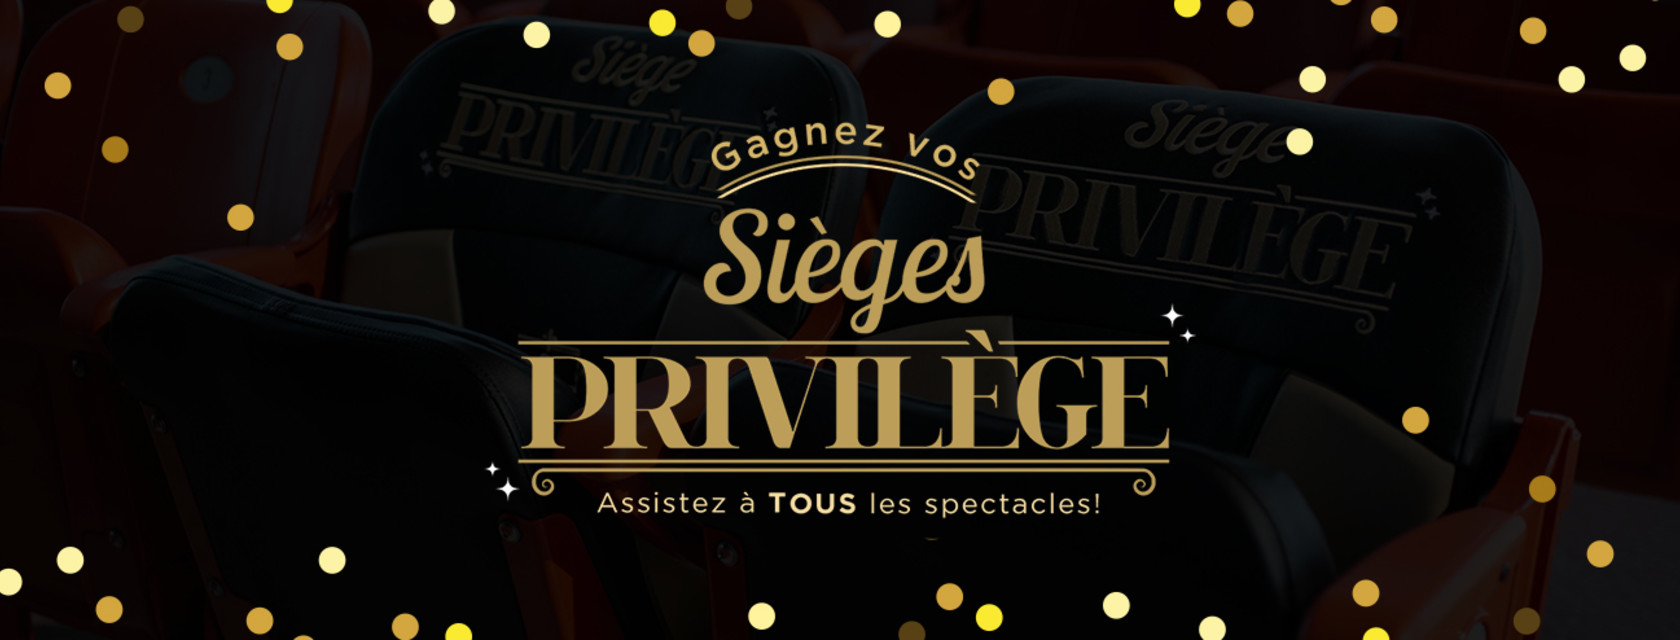 Win your Privilege seats!